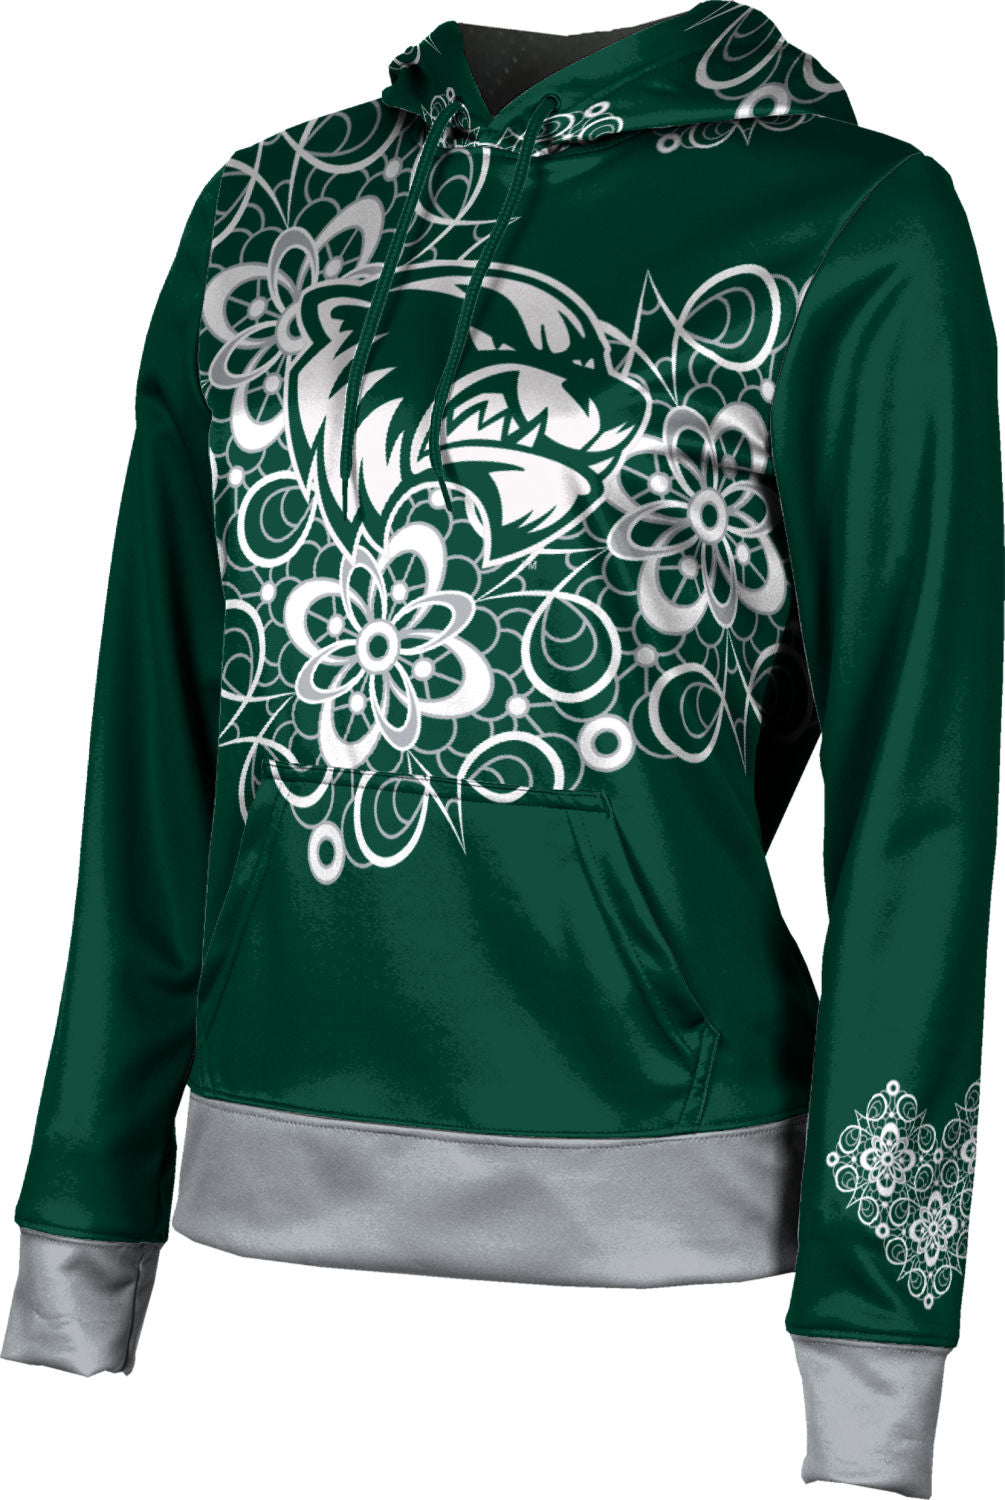 Utah Valley University: Girls' Pullover Hoodie - Foxy